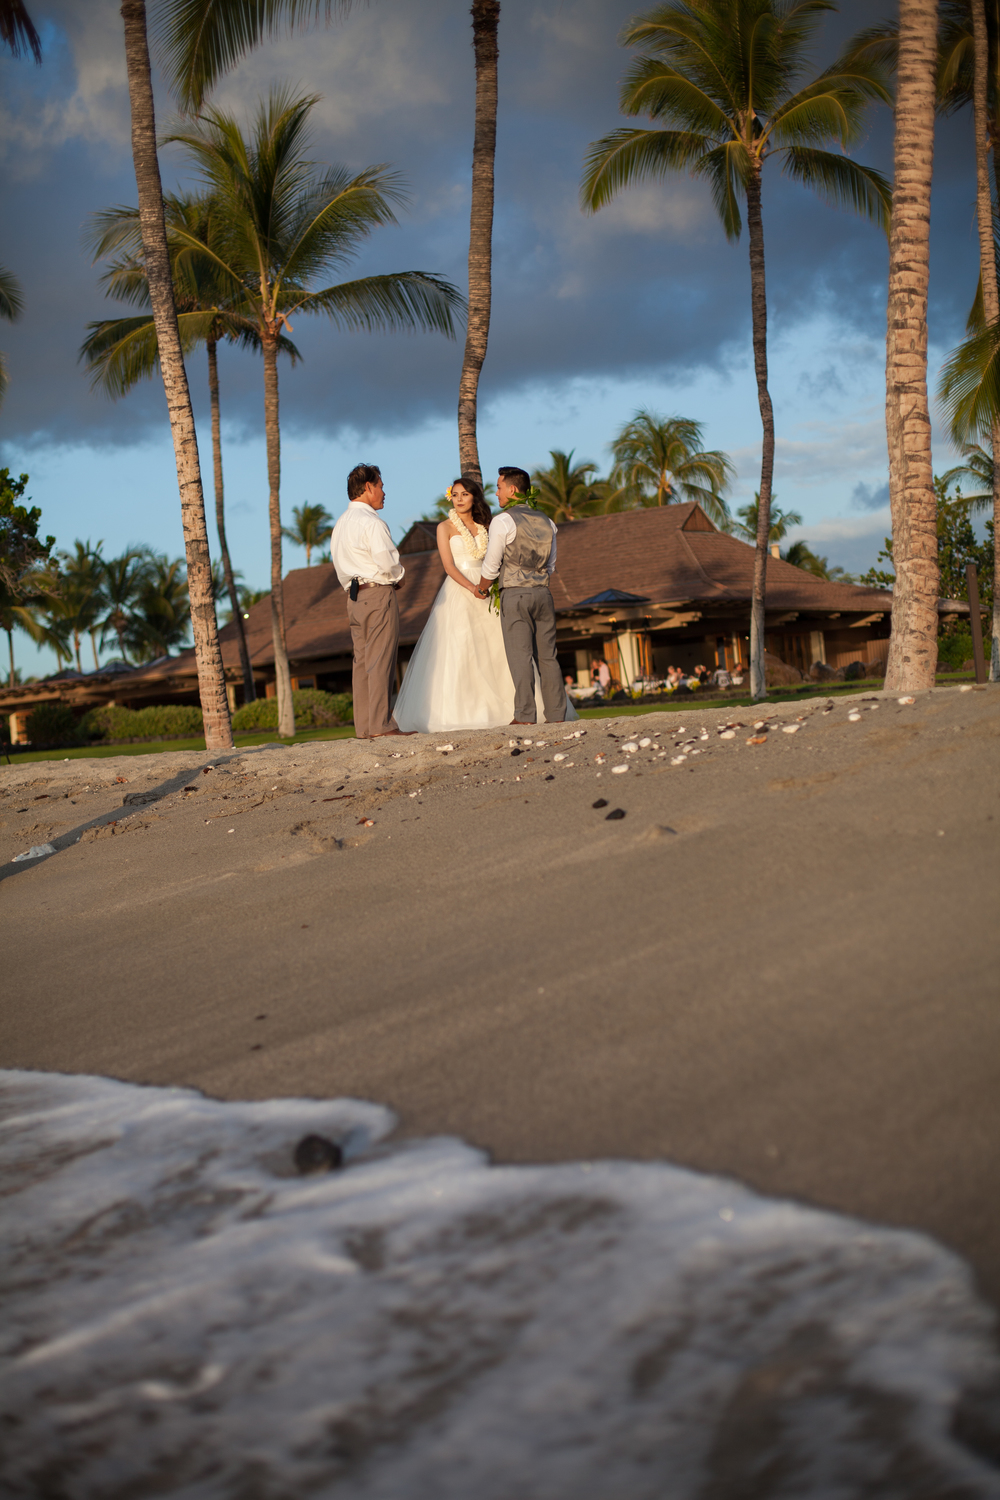 big island hawaii mauna lani resort wedding © kelilina photography 20160523182437-1.jpg